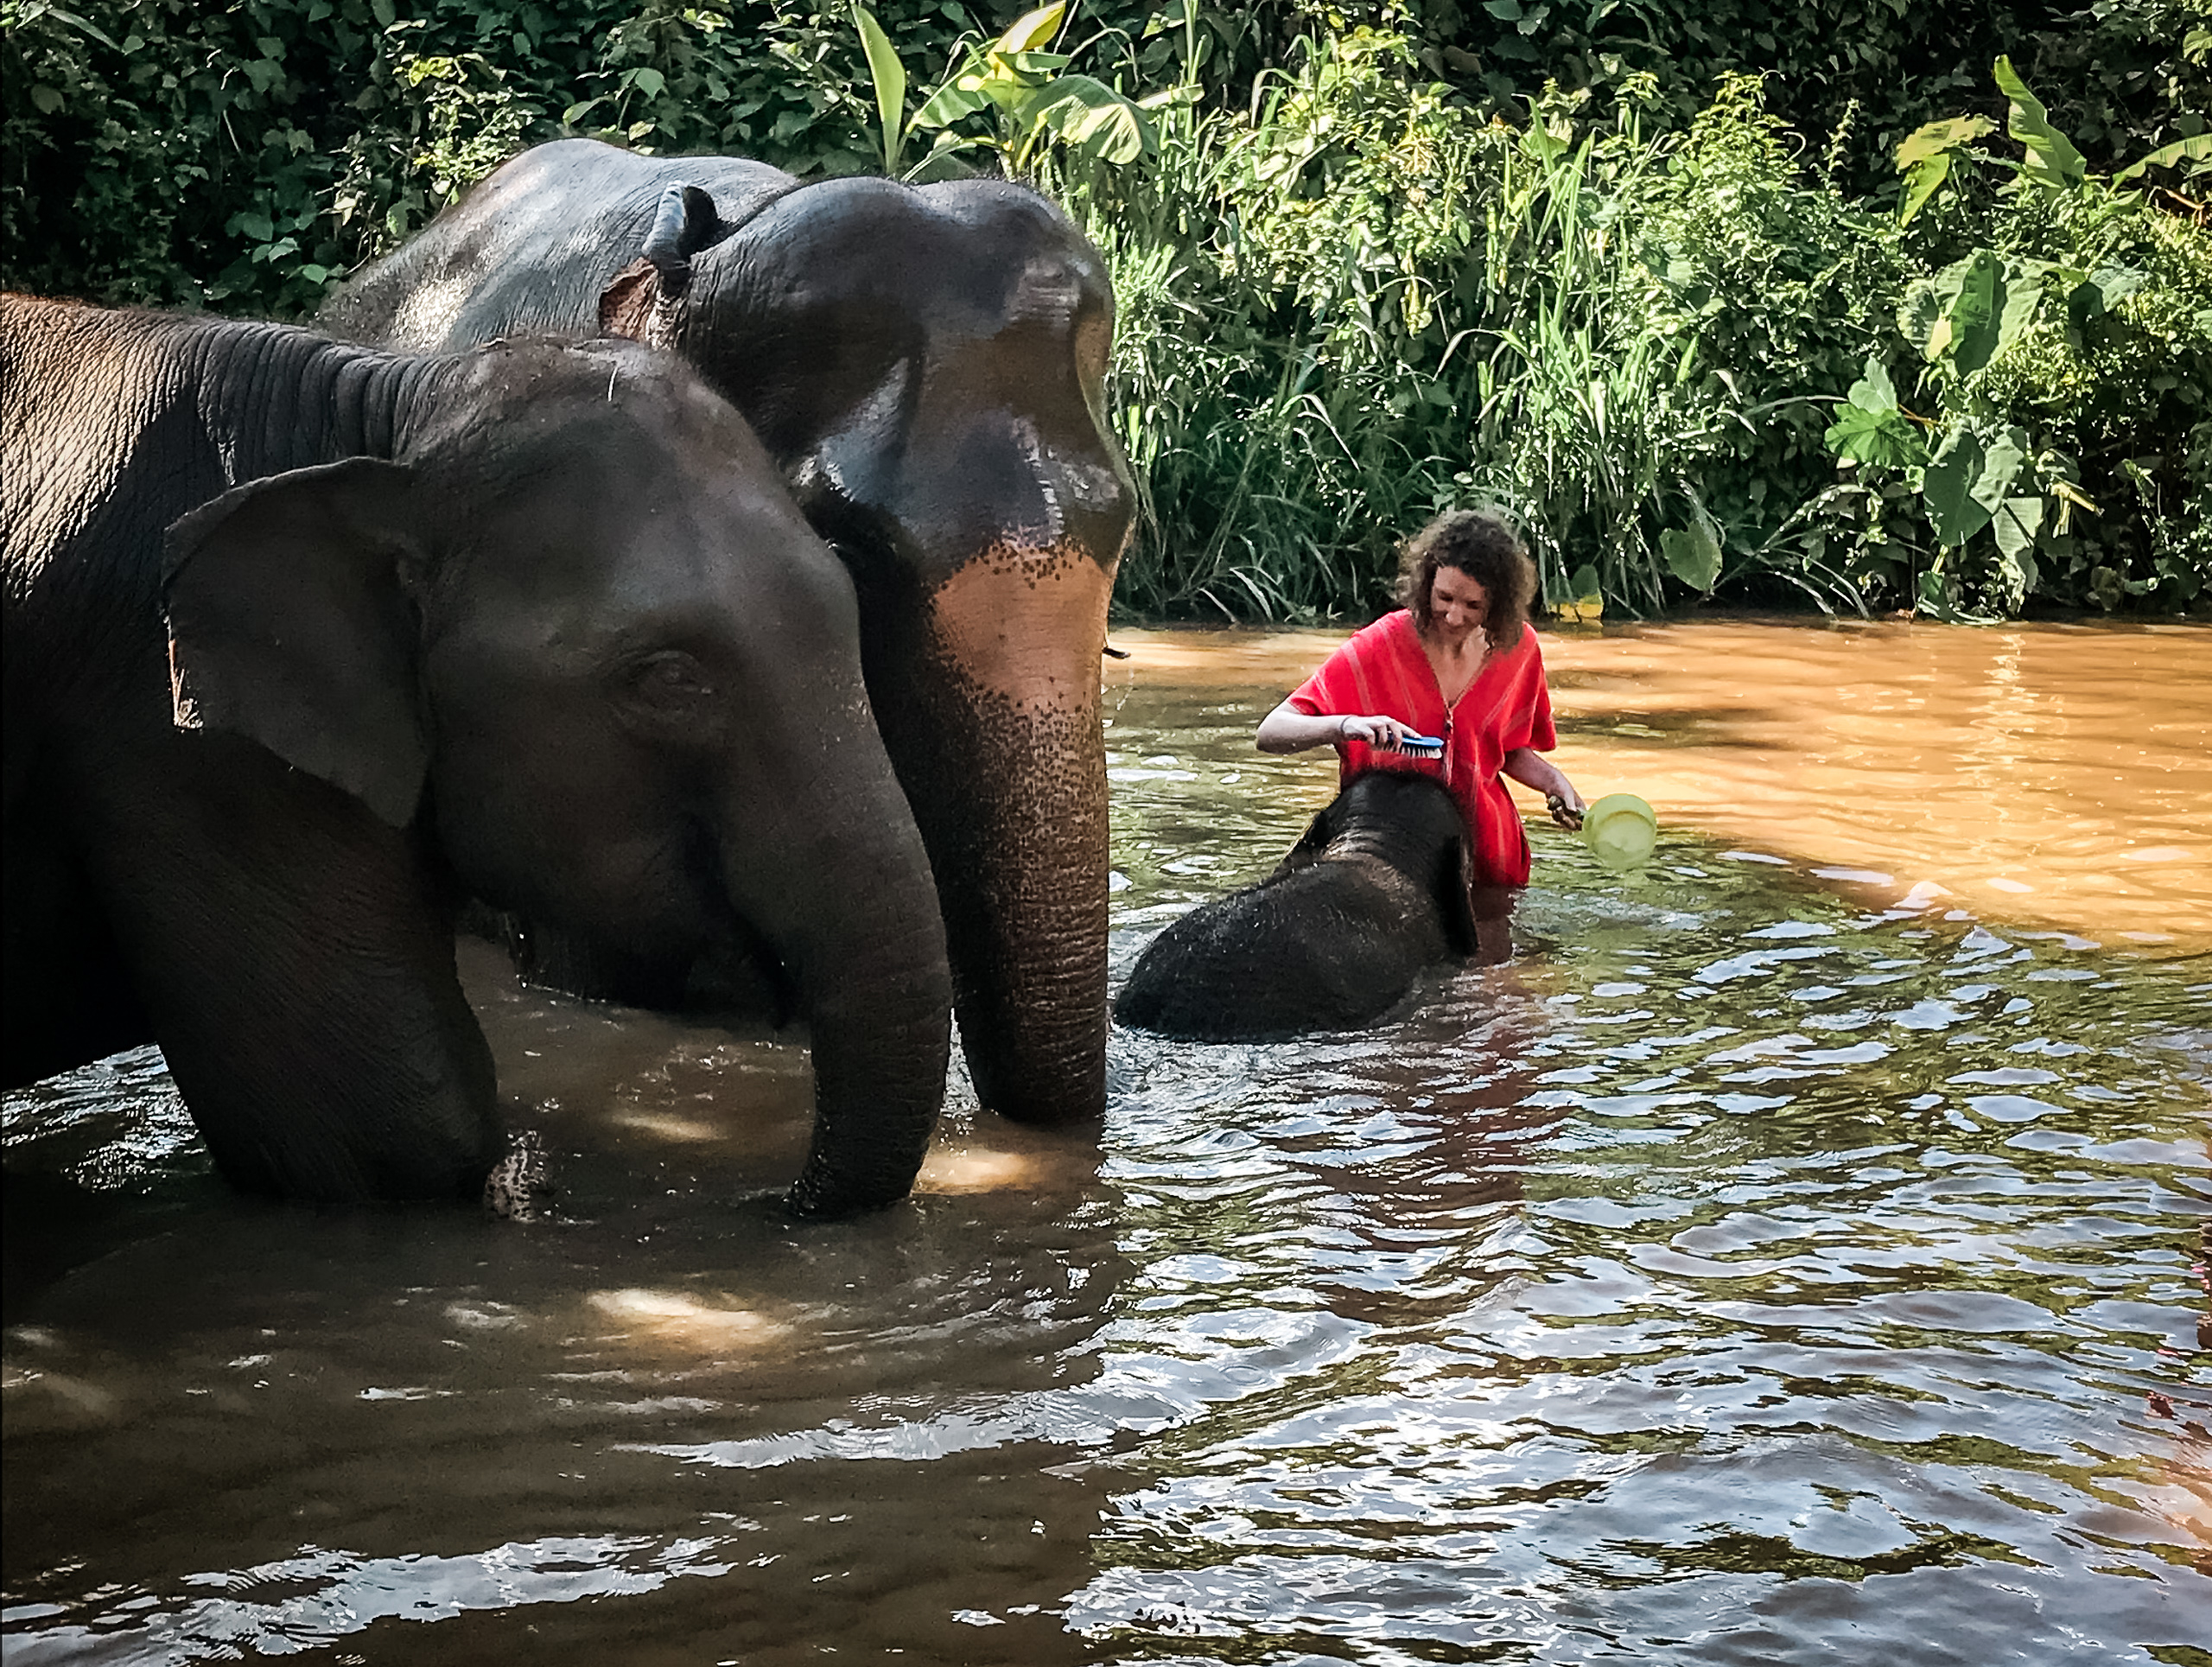 Backpacker Trip durch Thailand und Laos - Chiang Mai - Bamboo Elephants Family Care